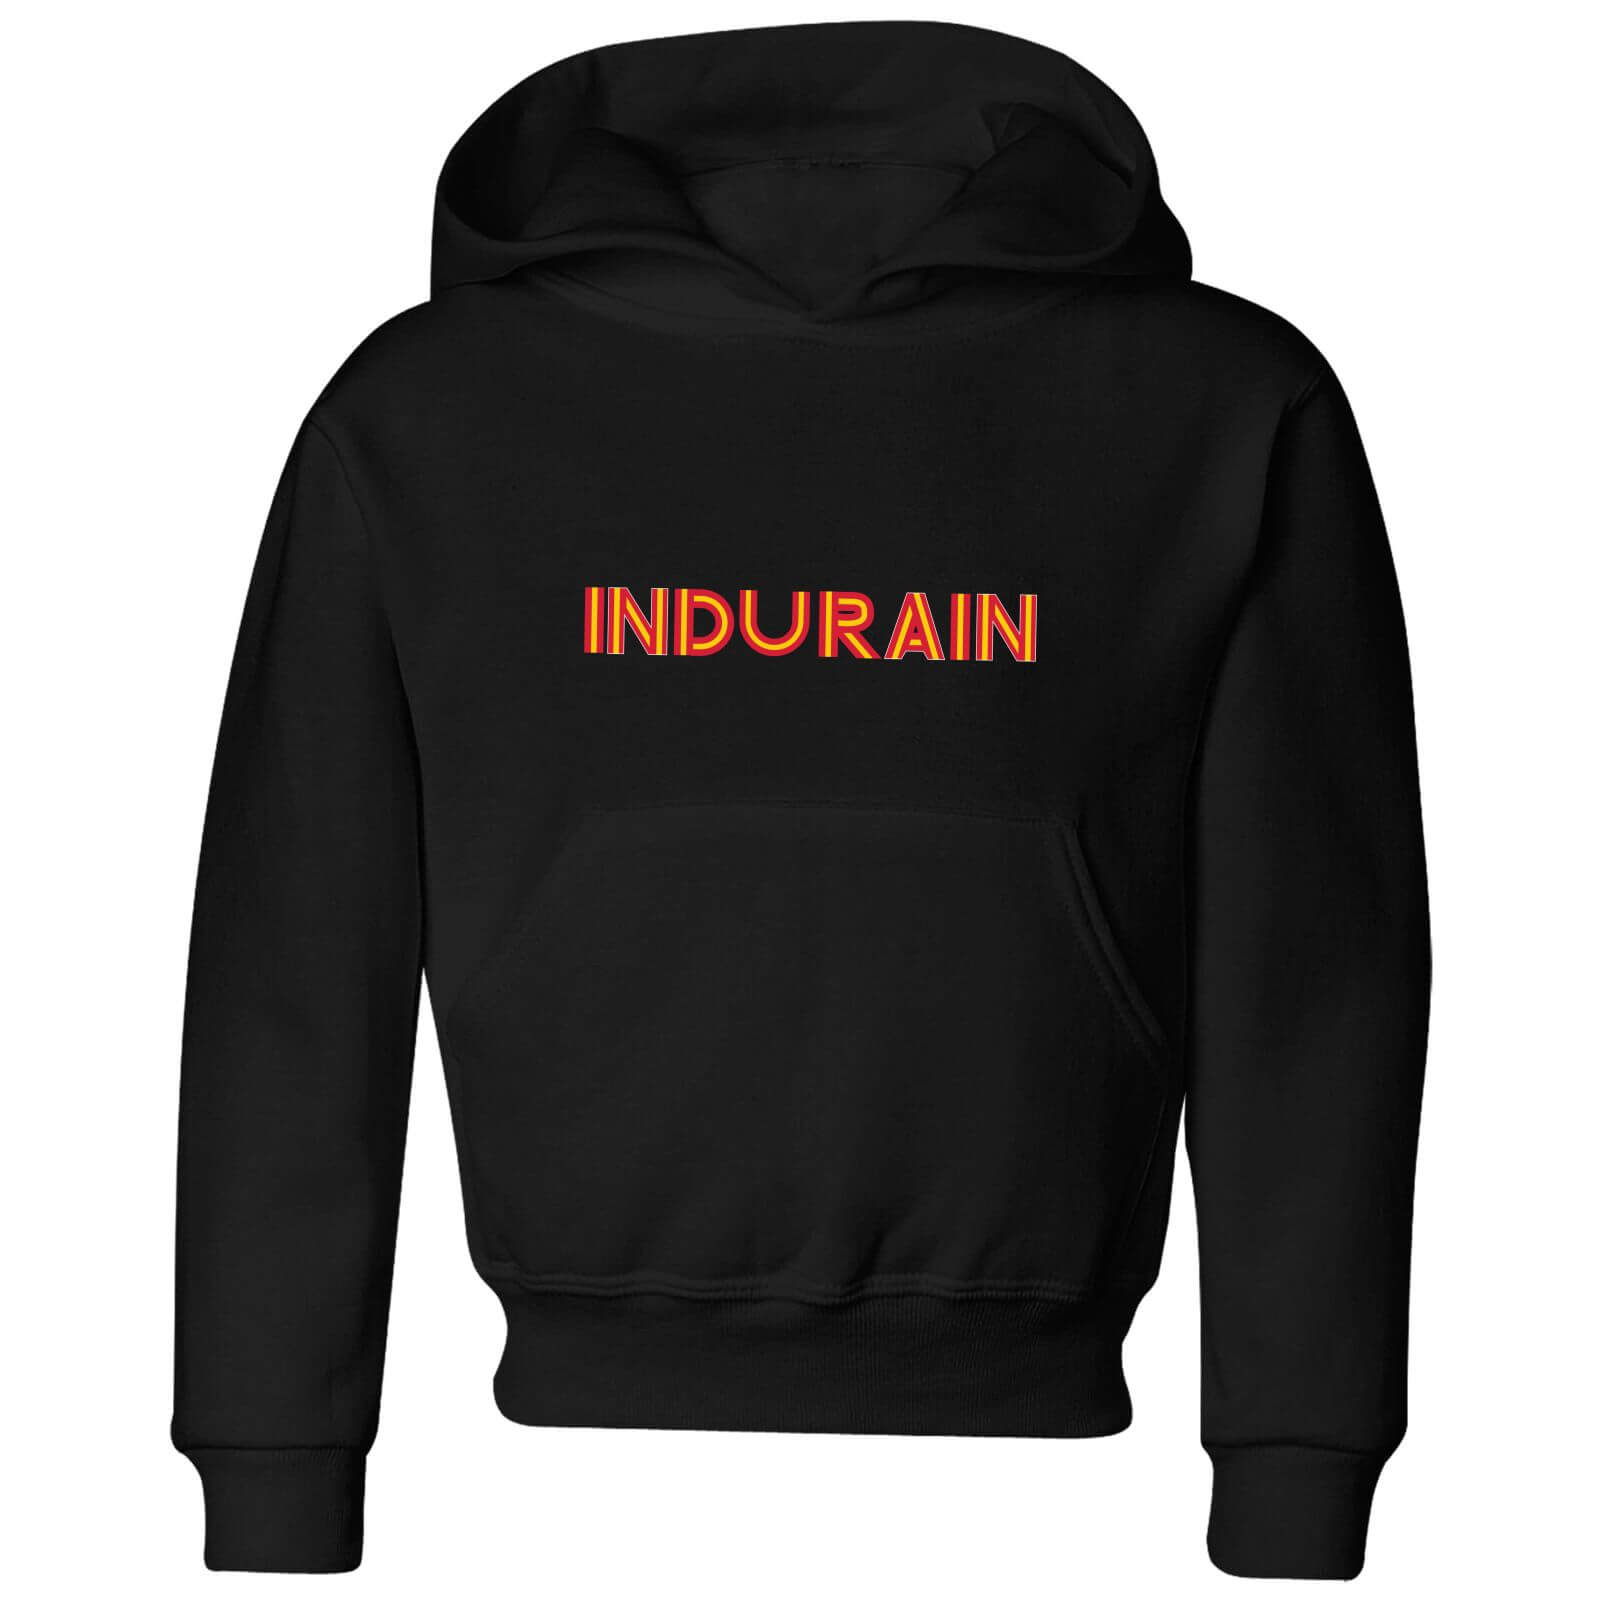 Summit Finish Indurain - Rider Name Kids' Hoodie - Black - 3-4 Years - Black